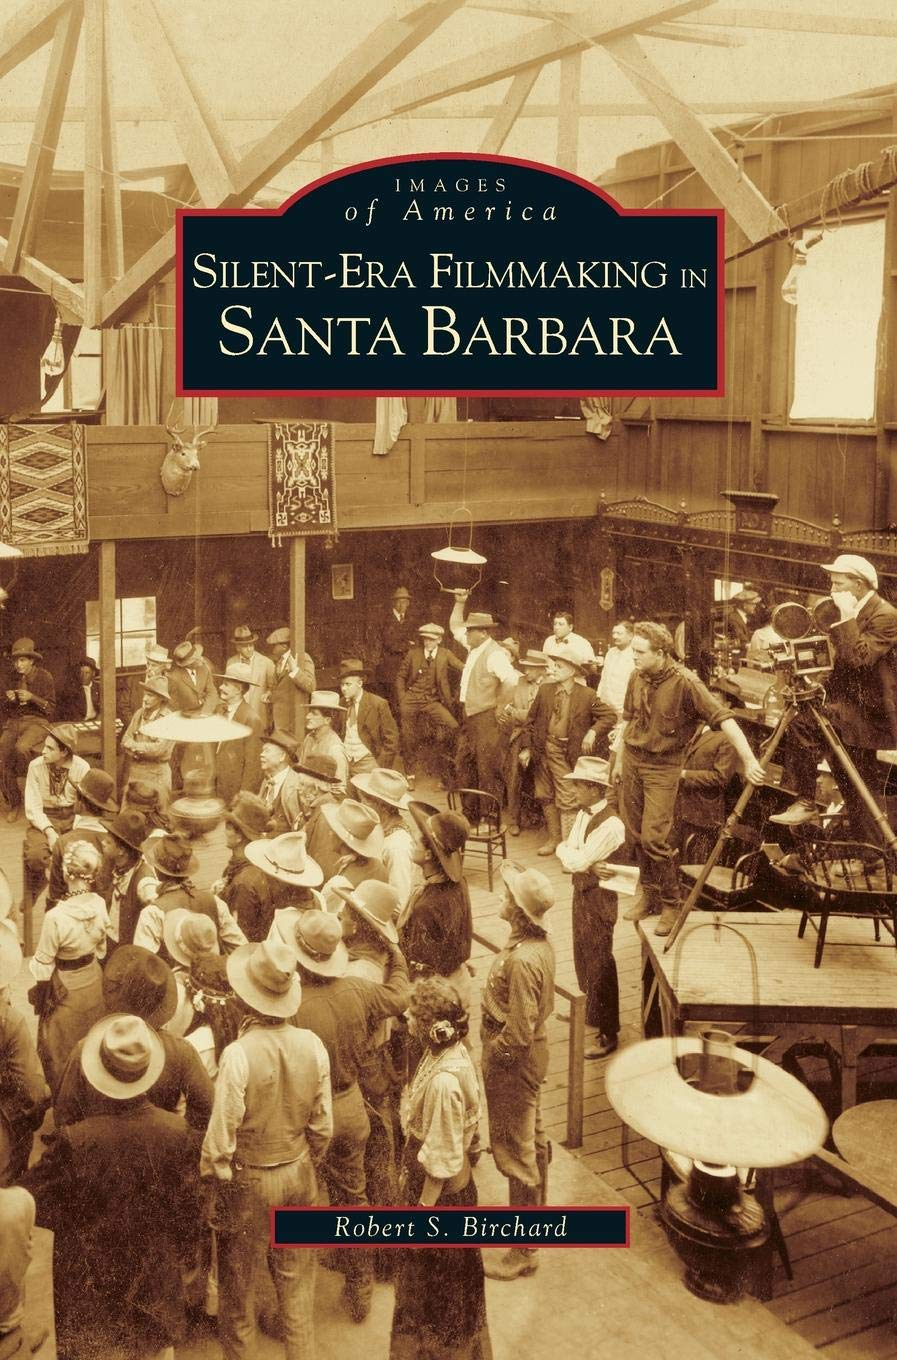 Download Silent-Era Filmmaking in Santa Barbara PDF ePub ebook